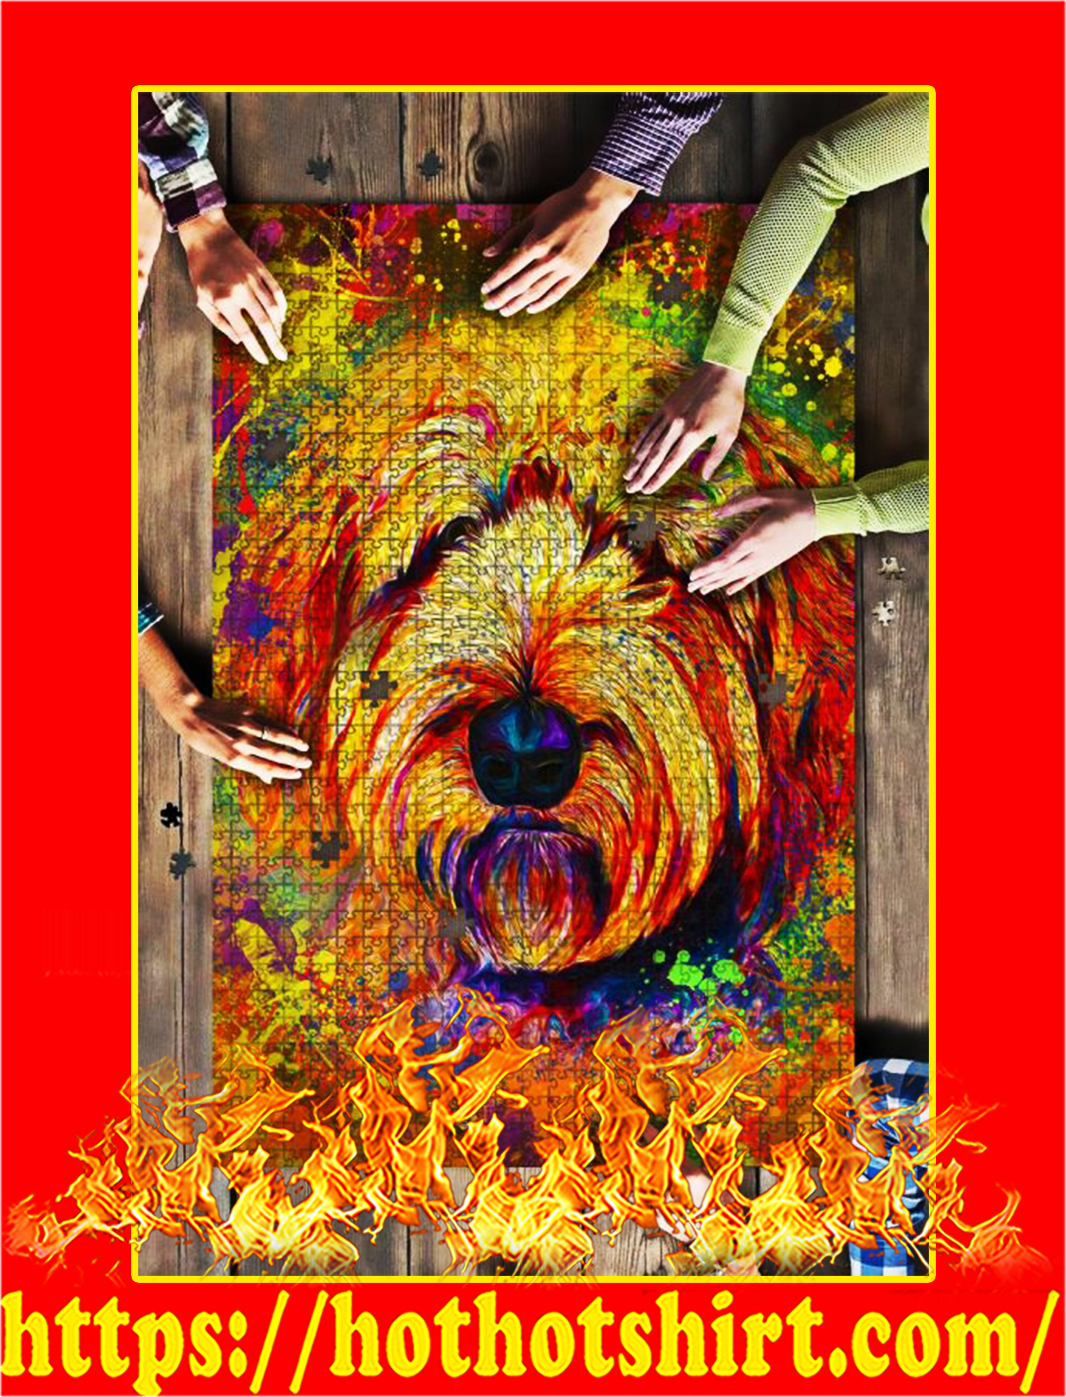 Goldendoodle Dog Colorful Jigsaw Puzzle - 500 pieces